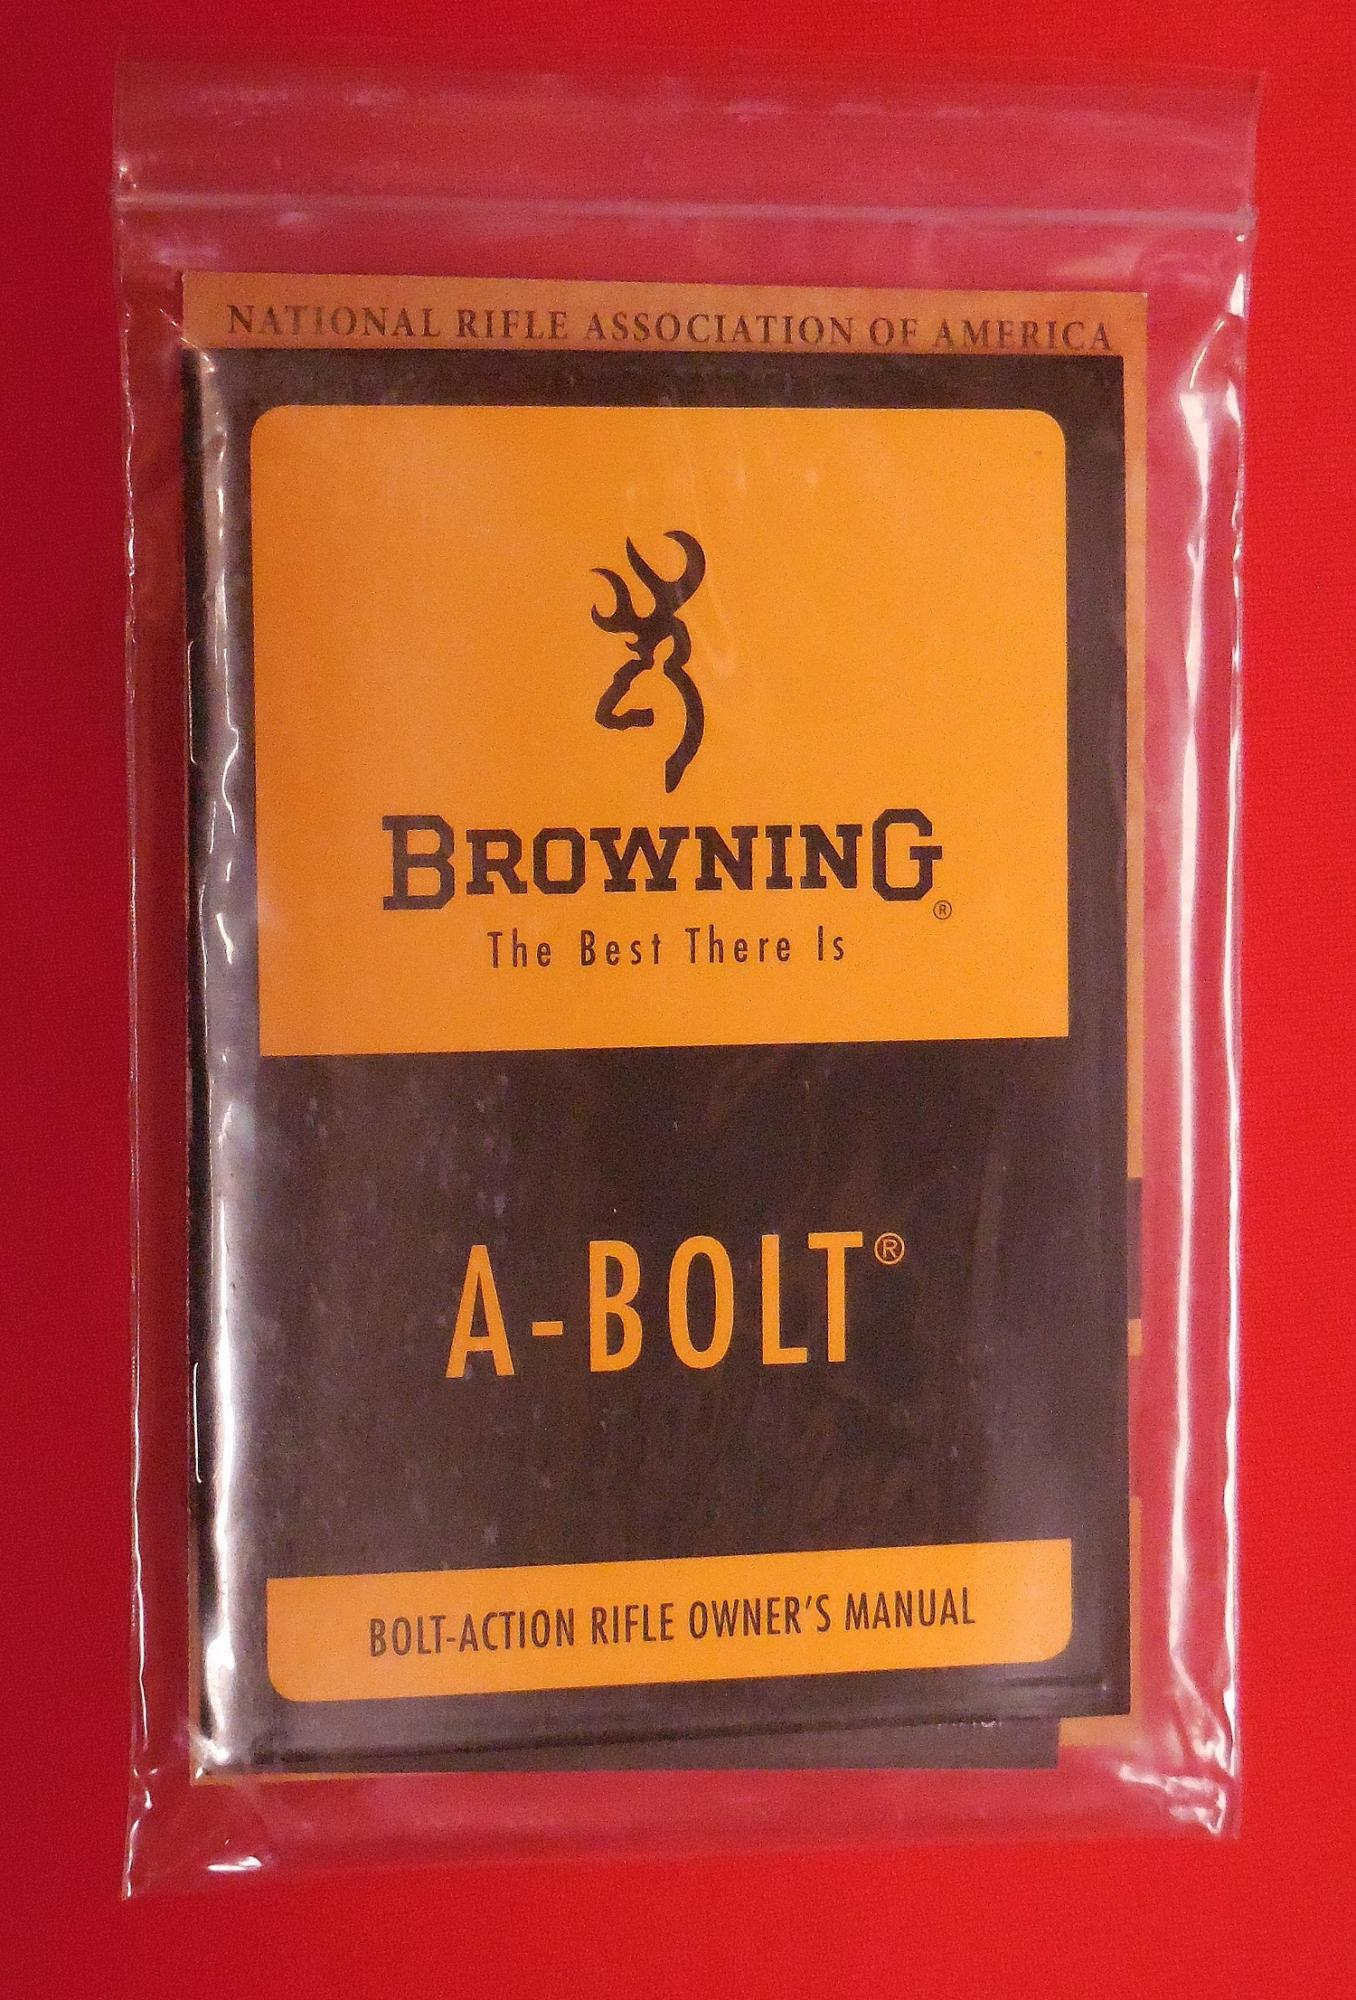 Brn_A-Bolt_Med_Manual.jpg